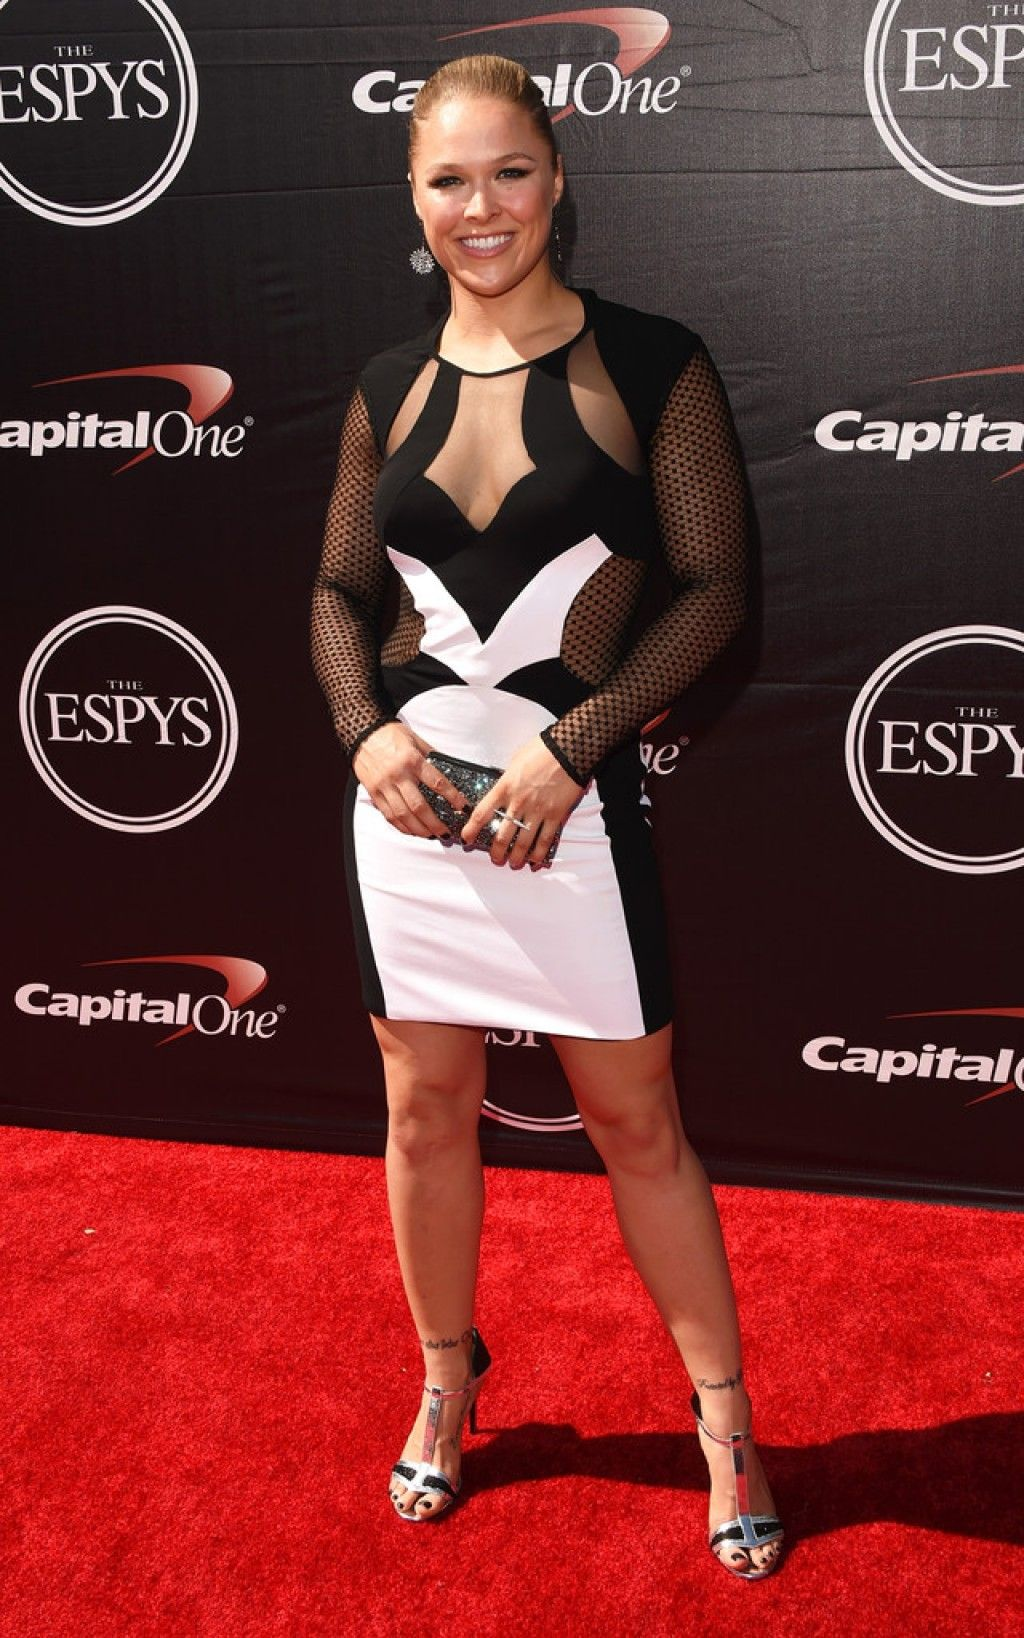 UFC fighter Ronda Rousey reveals she struggled with bulimia ...